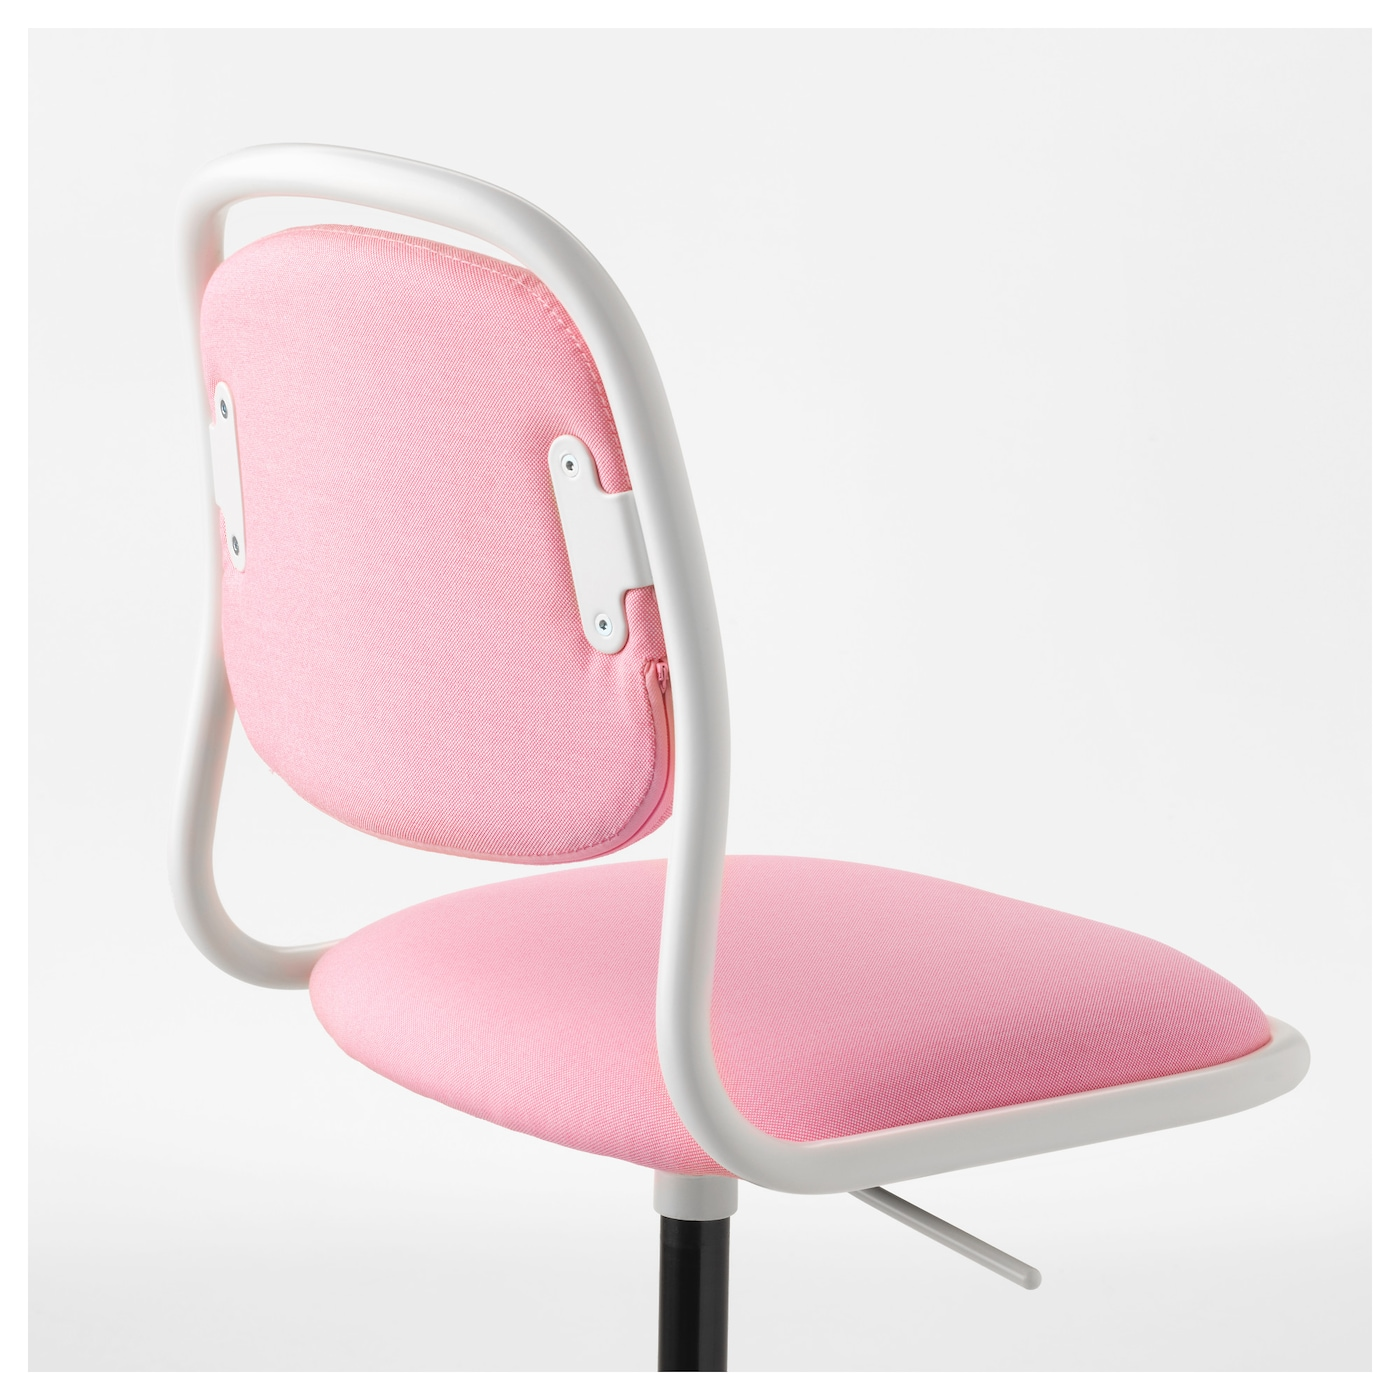 rfj ll chaise de bureau enfant blanc vissle rose ikea. Black Bedroom Furniture Sets. Home Design Ideas